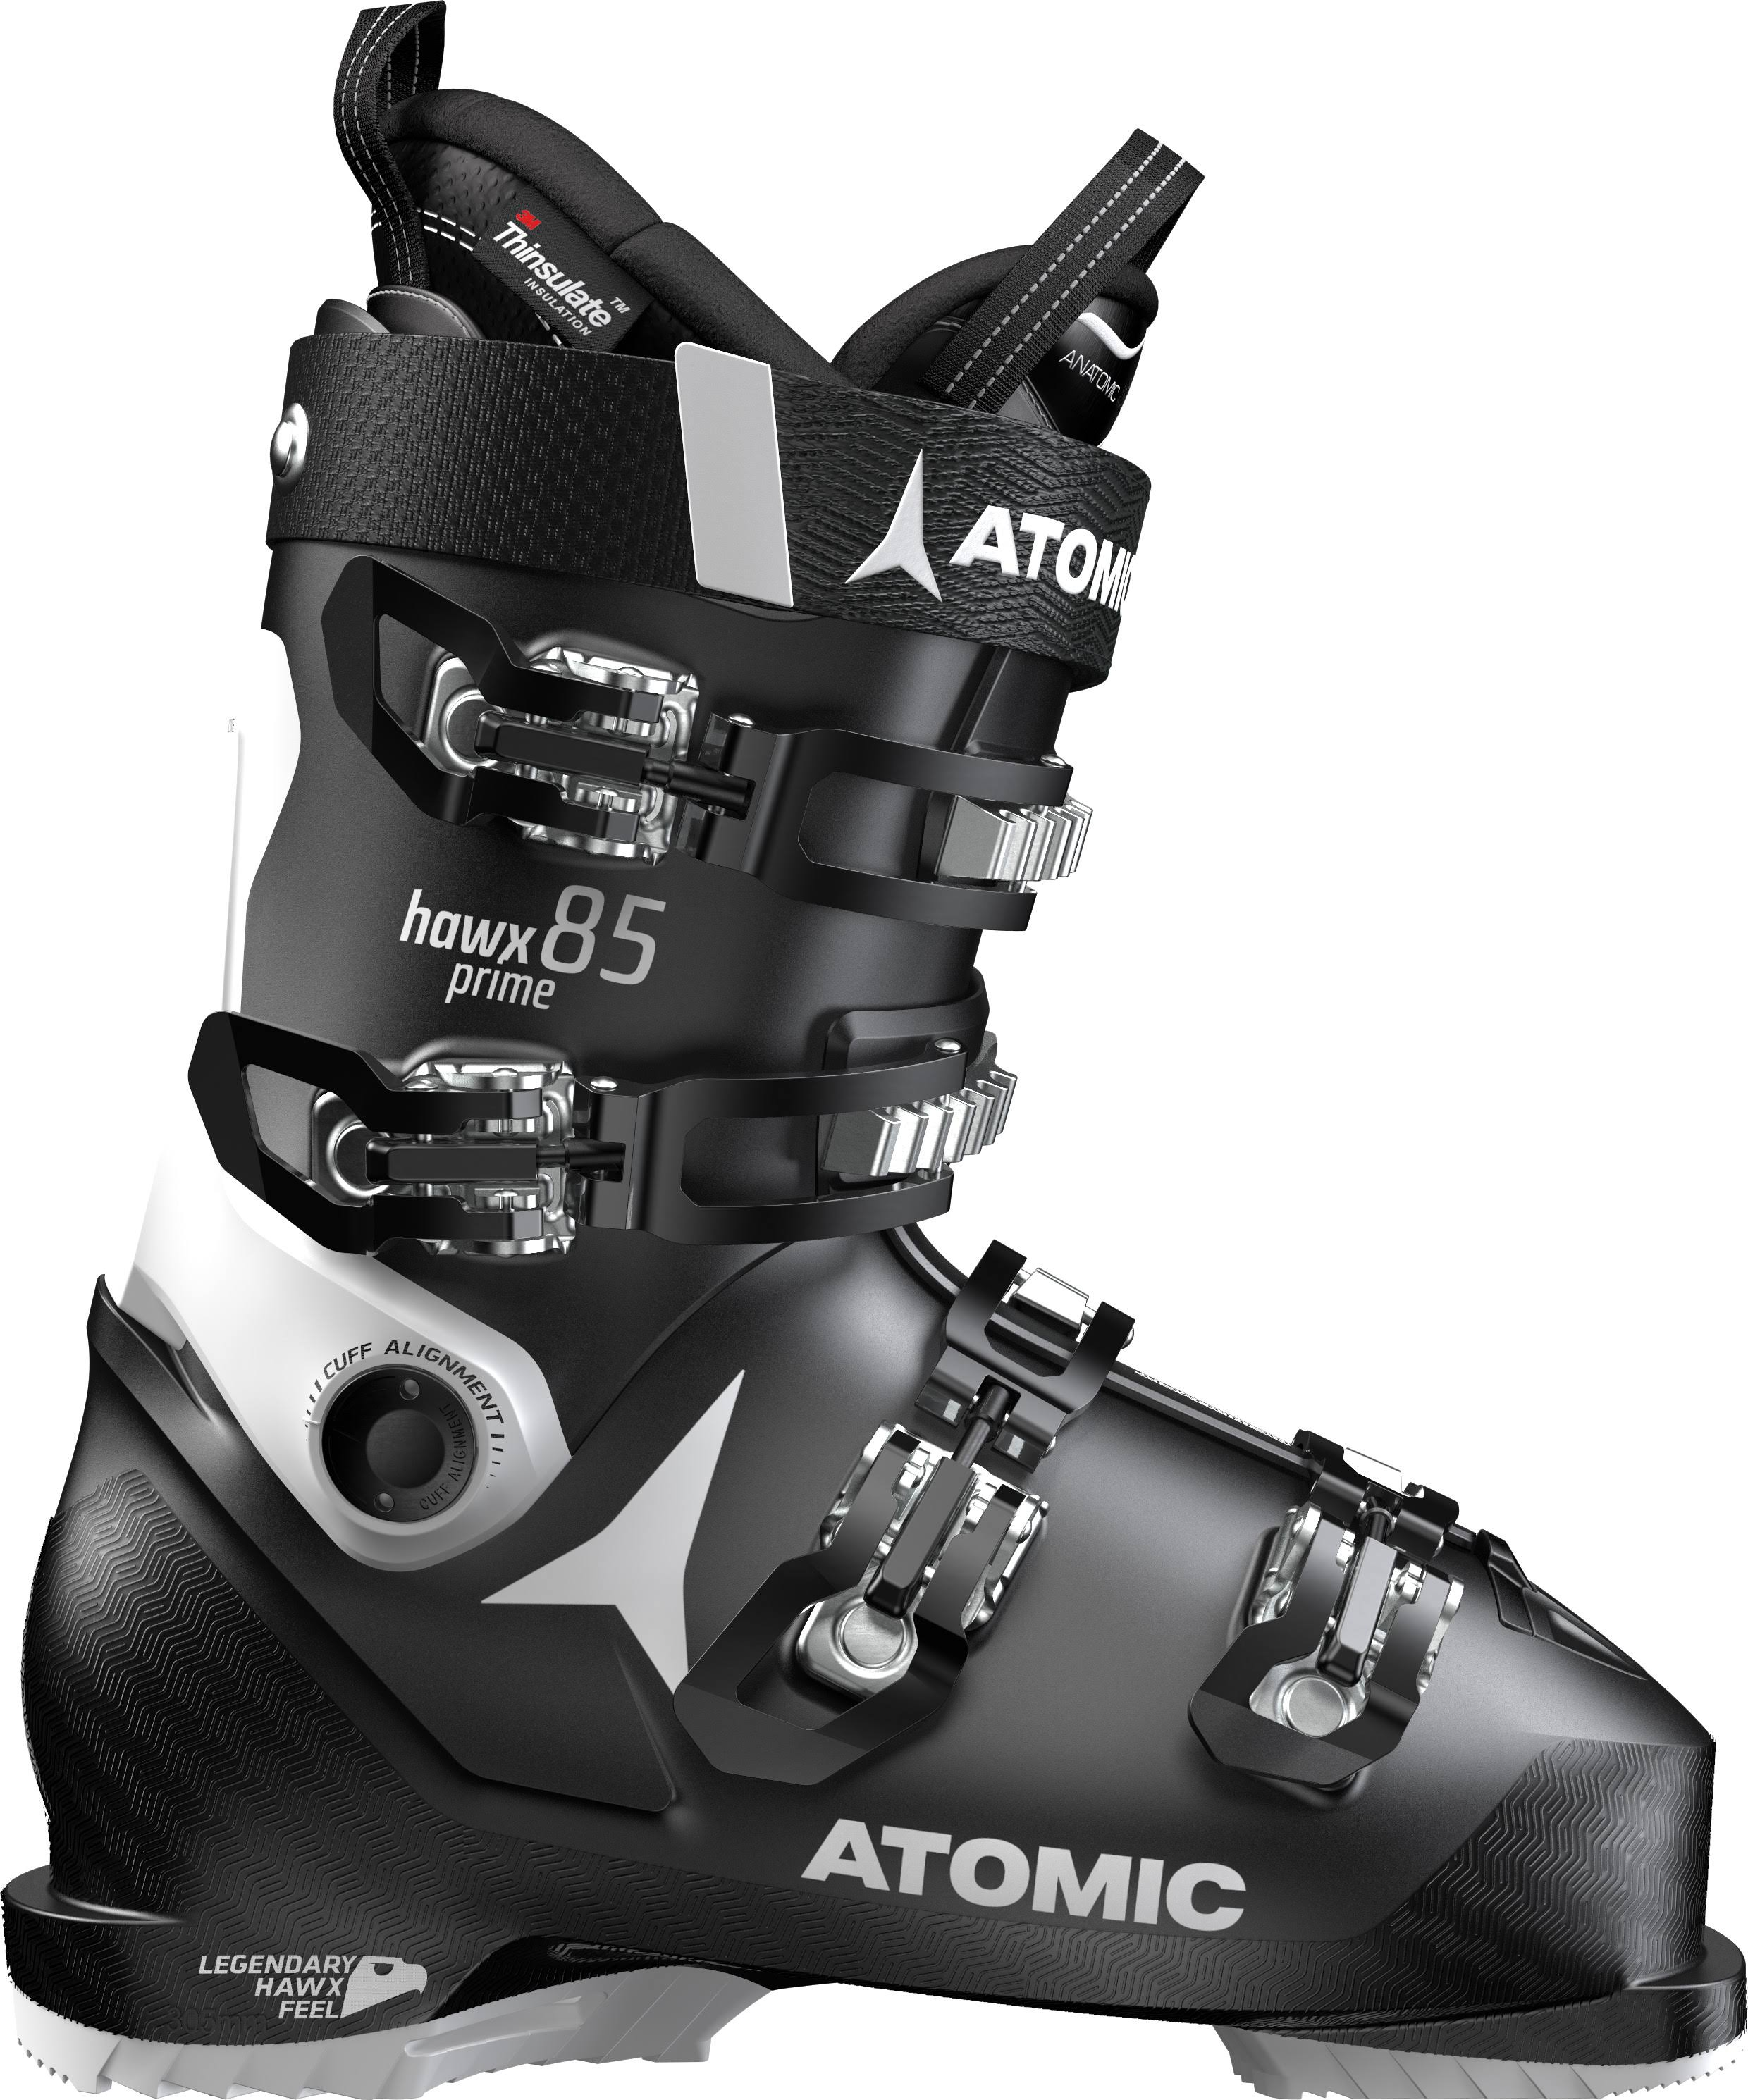 Atomic Hawx Prime 85 W Ski Boots - Black/White, EU34.5, 220mm